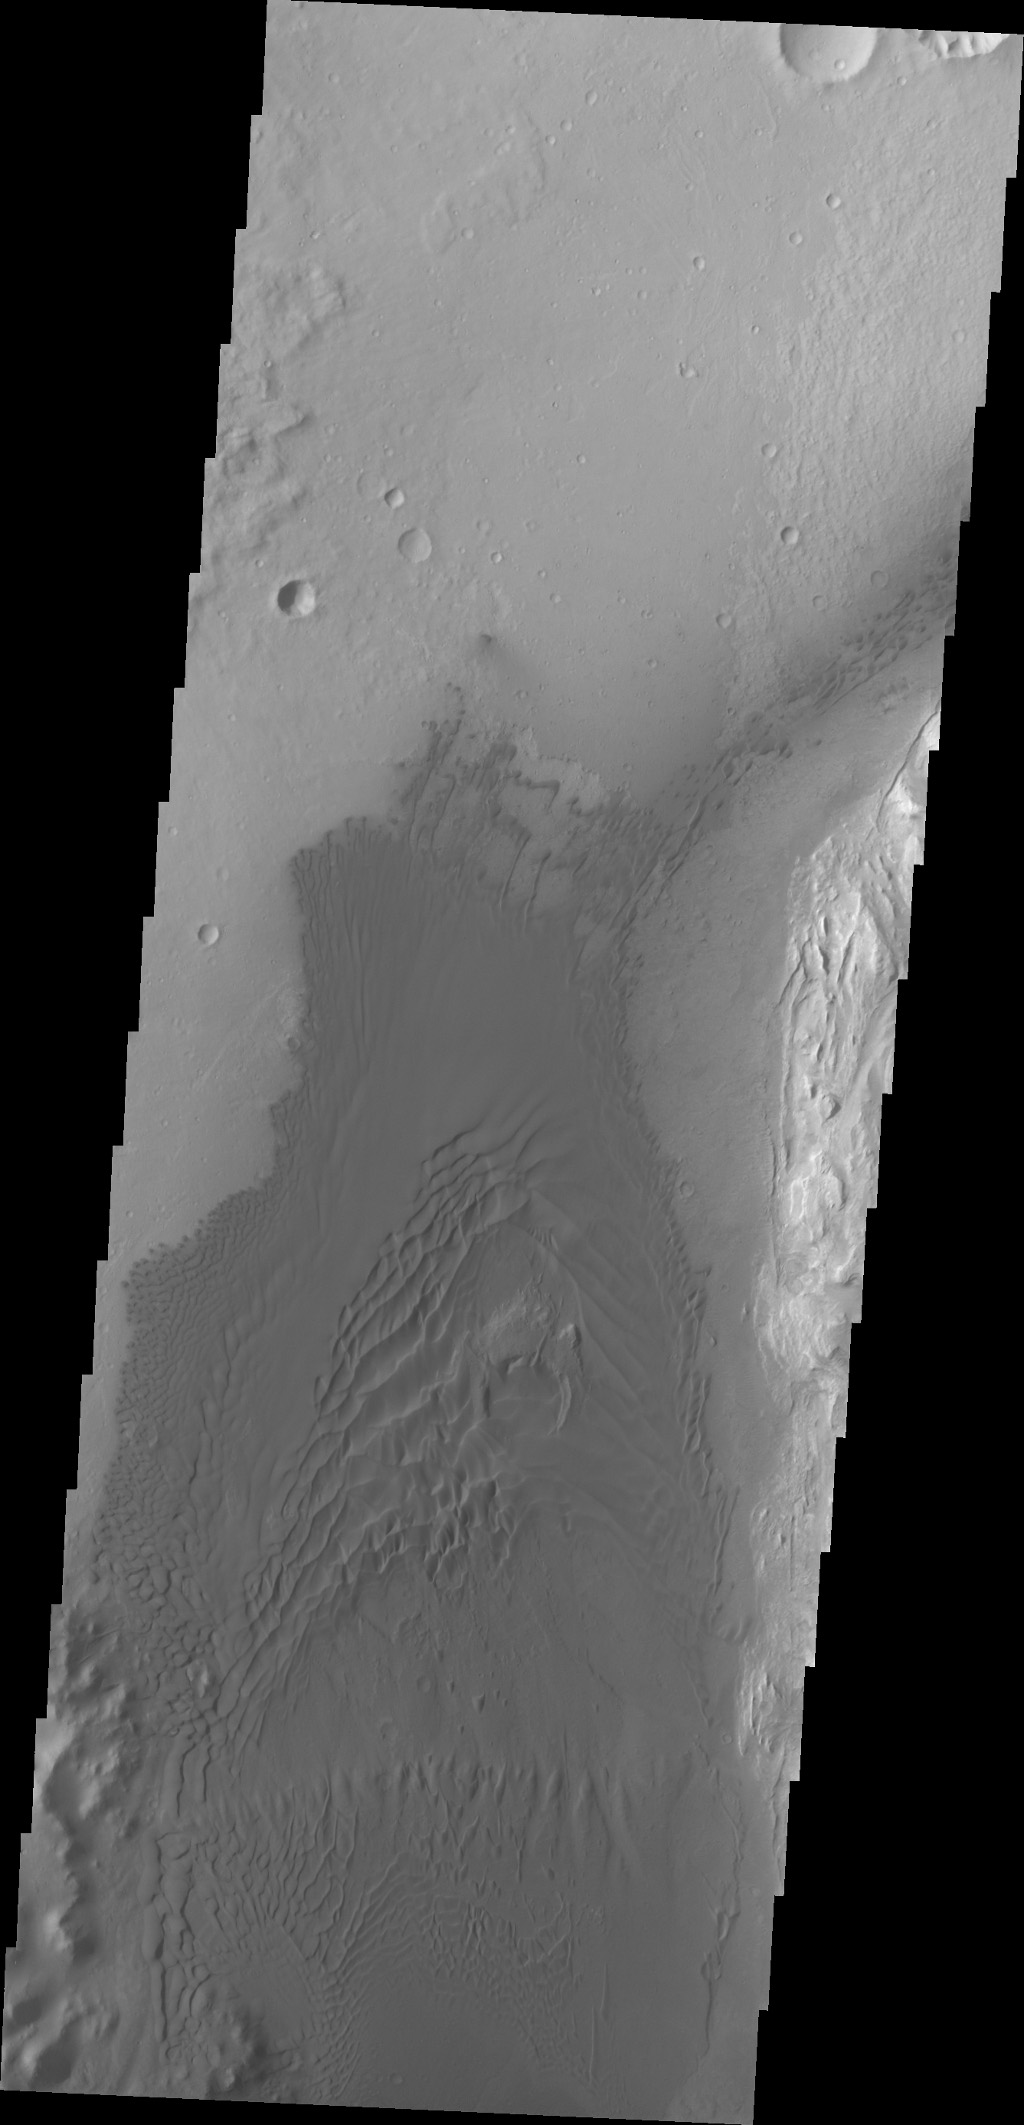 This image captured by NASA's 2001 Mars Odyssey spacecraft of the western floor of Gale Crater shows the large region of sand and sand dunes present southwest of the landing site.